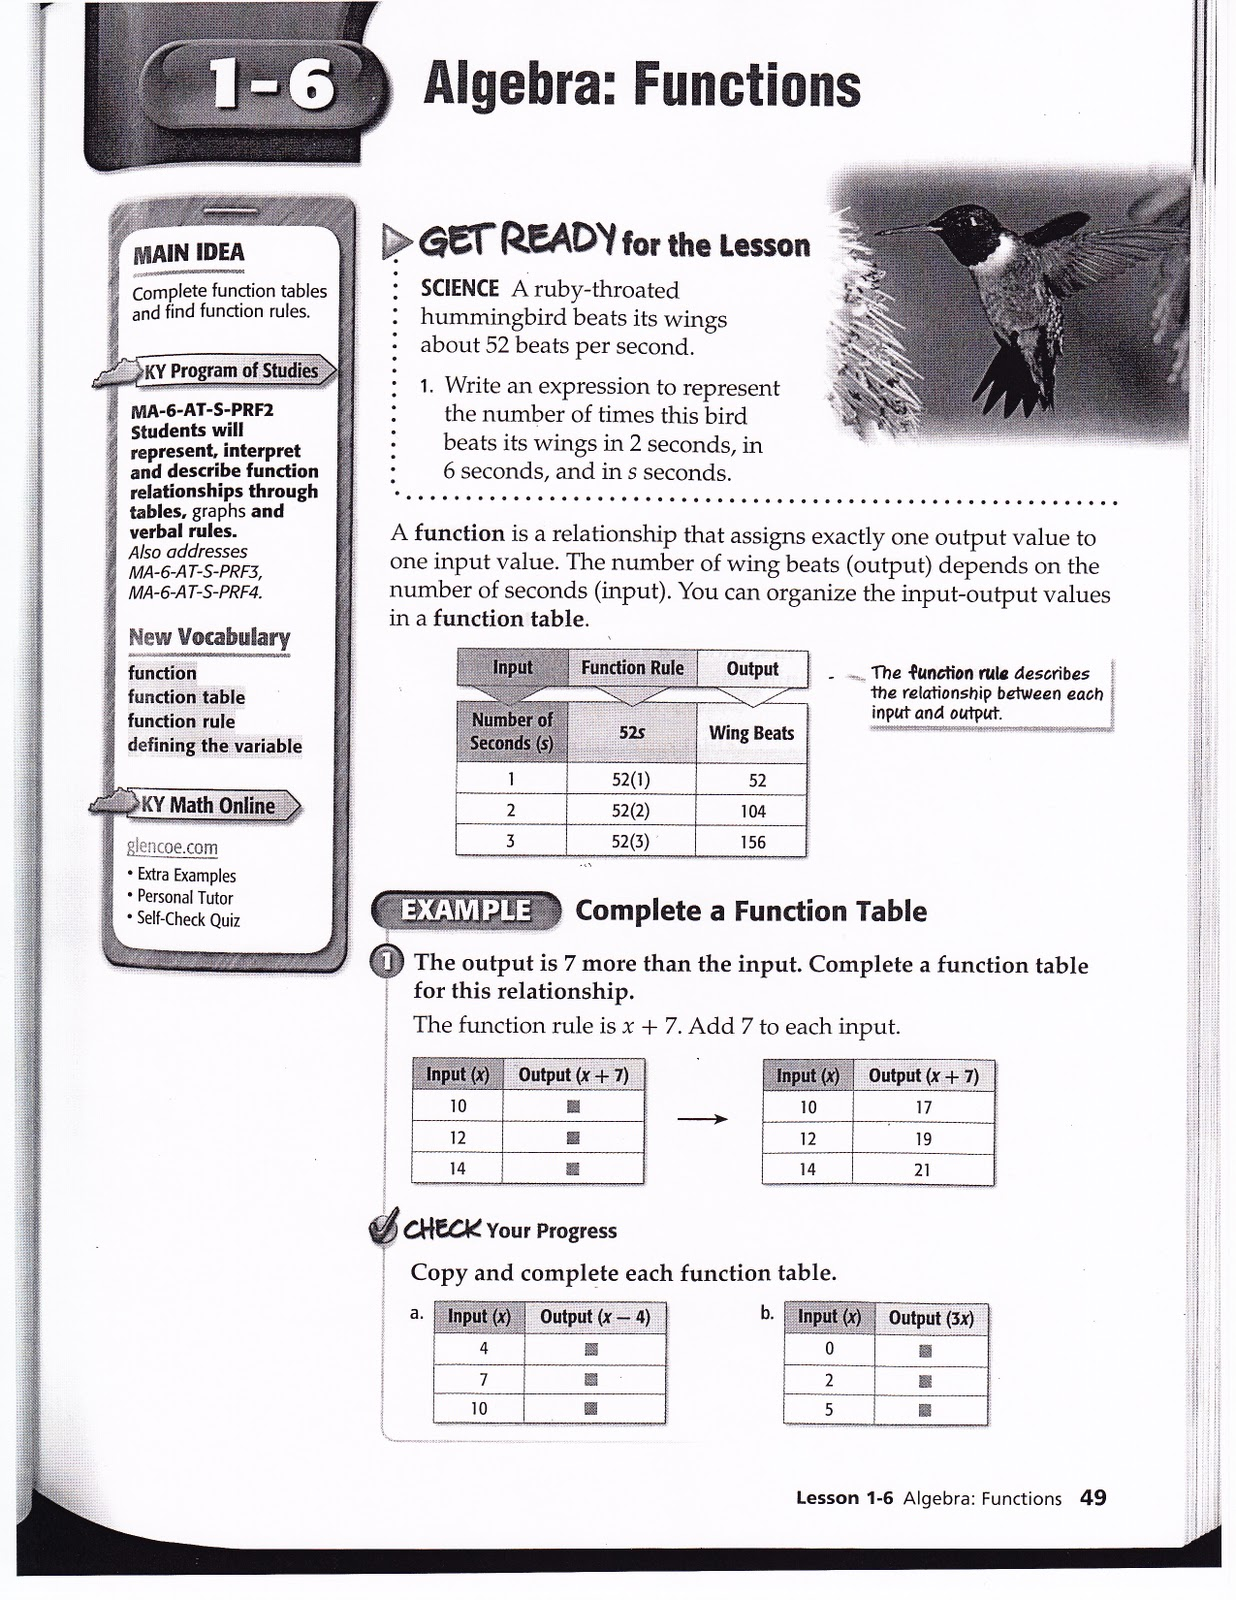 Science homework help for 6th graders